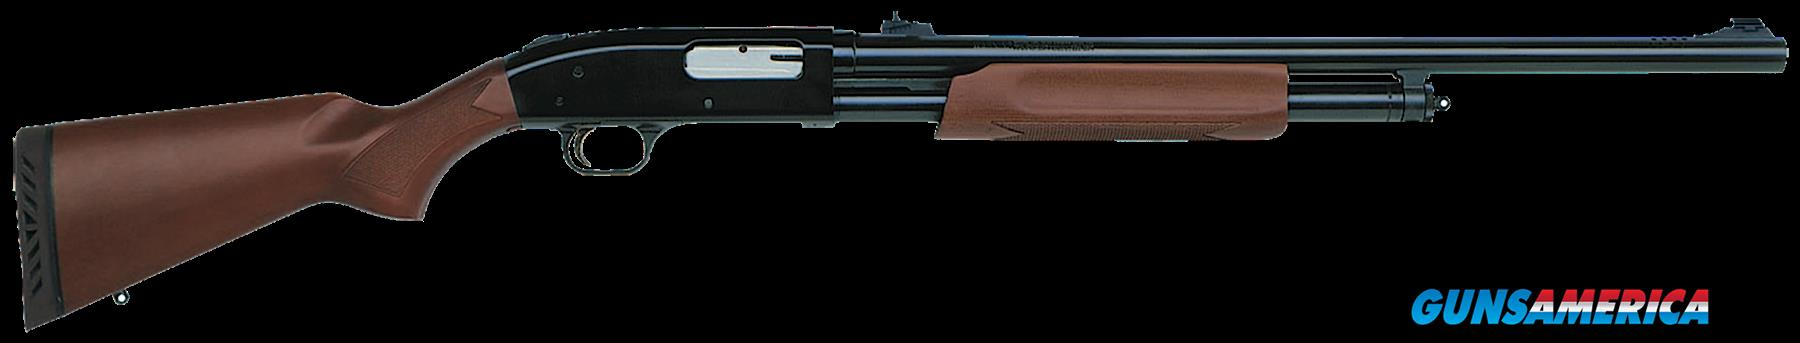 "Mossberg 54244 500 Pump 12 ga 24"" 3"" Wood Stk Blued  Guns > Shotguns > MN Misc Shotguns"